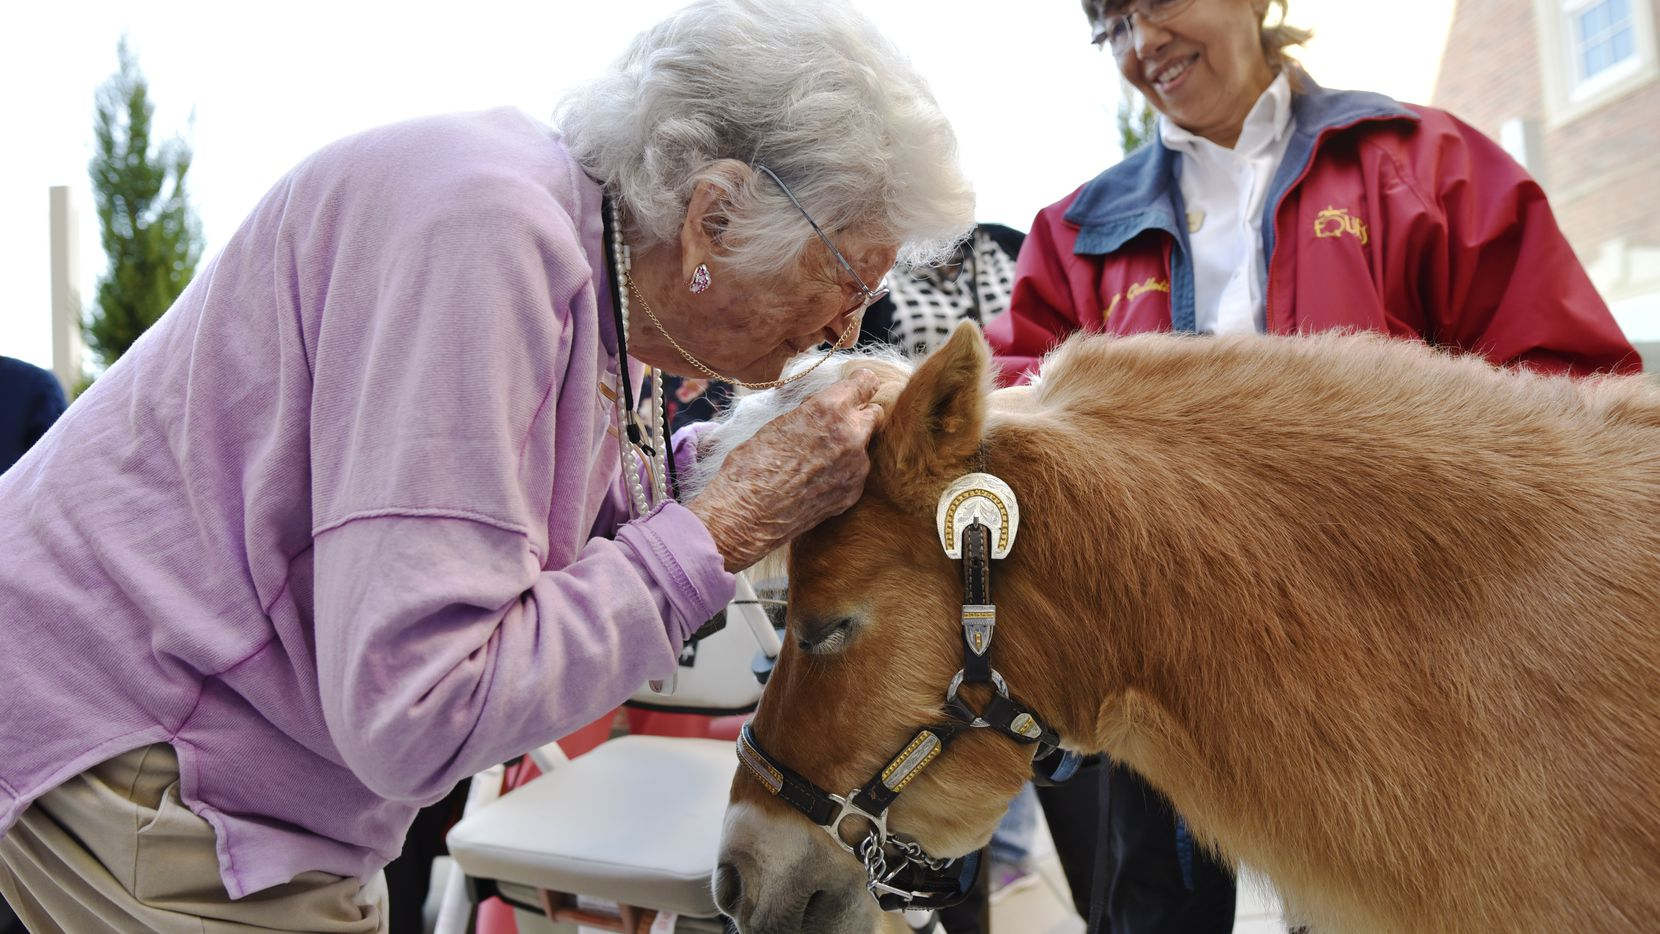 Virginia Meyers, 97, leans close to give a miniature horse named Dare a kiss on his head during a Tuesday visit at The Preston of the Park Cities retirement community.